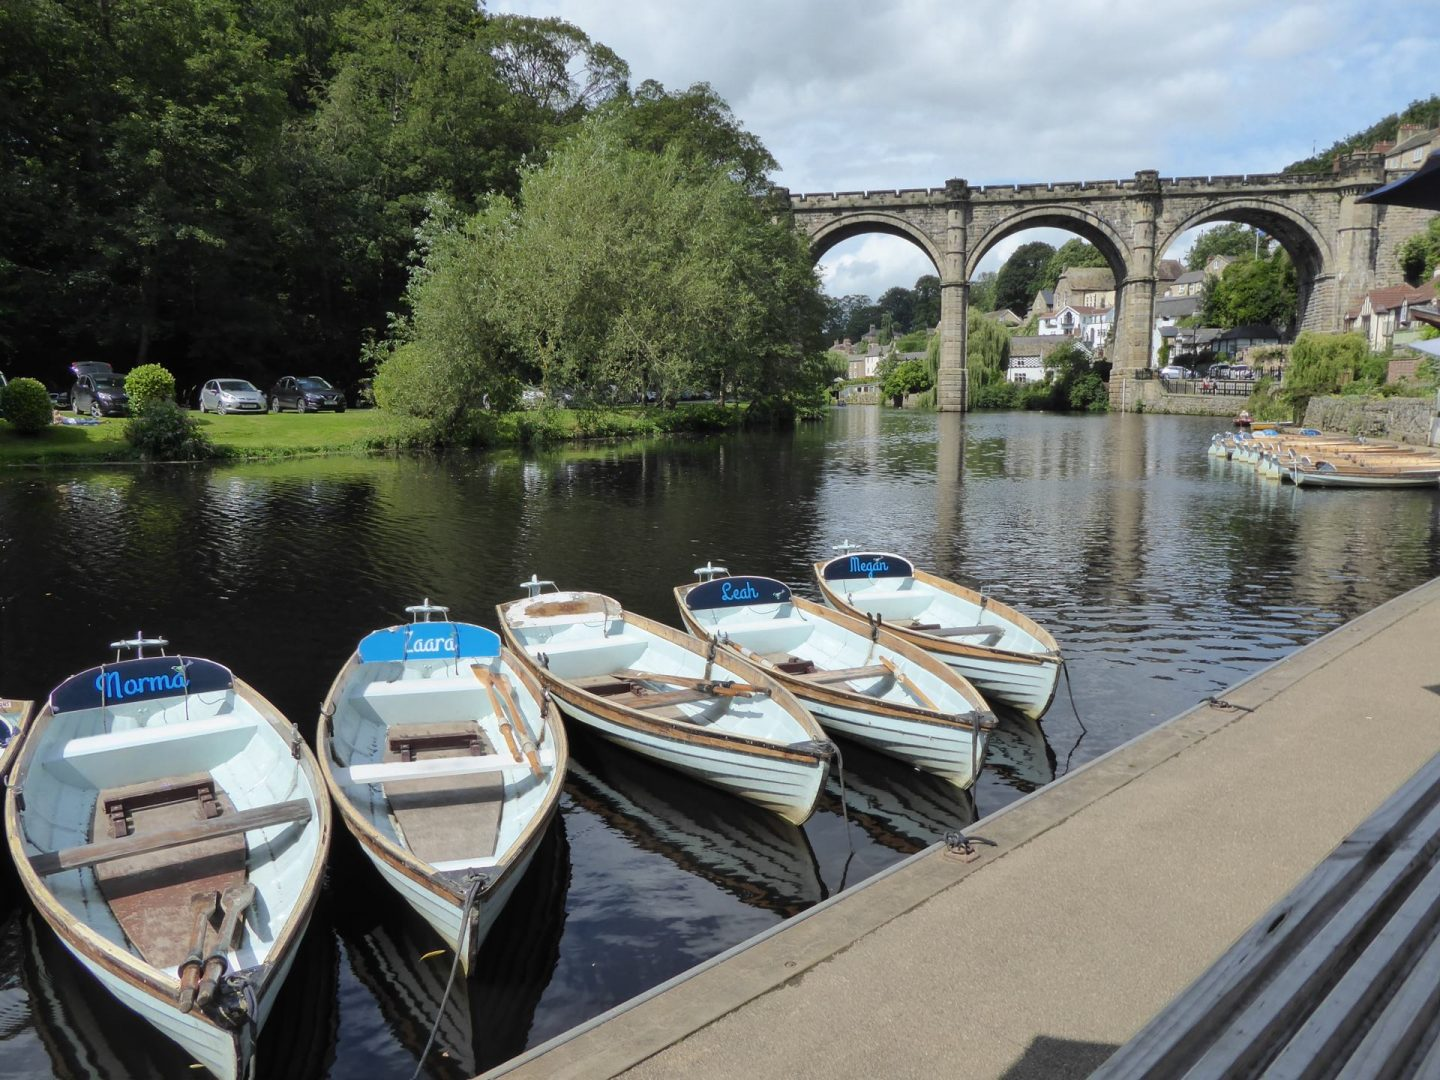 View of River Nidd from Marigolds Cafe - docked boats in the foreground,